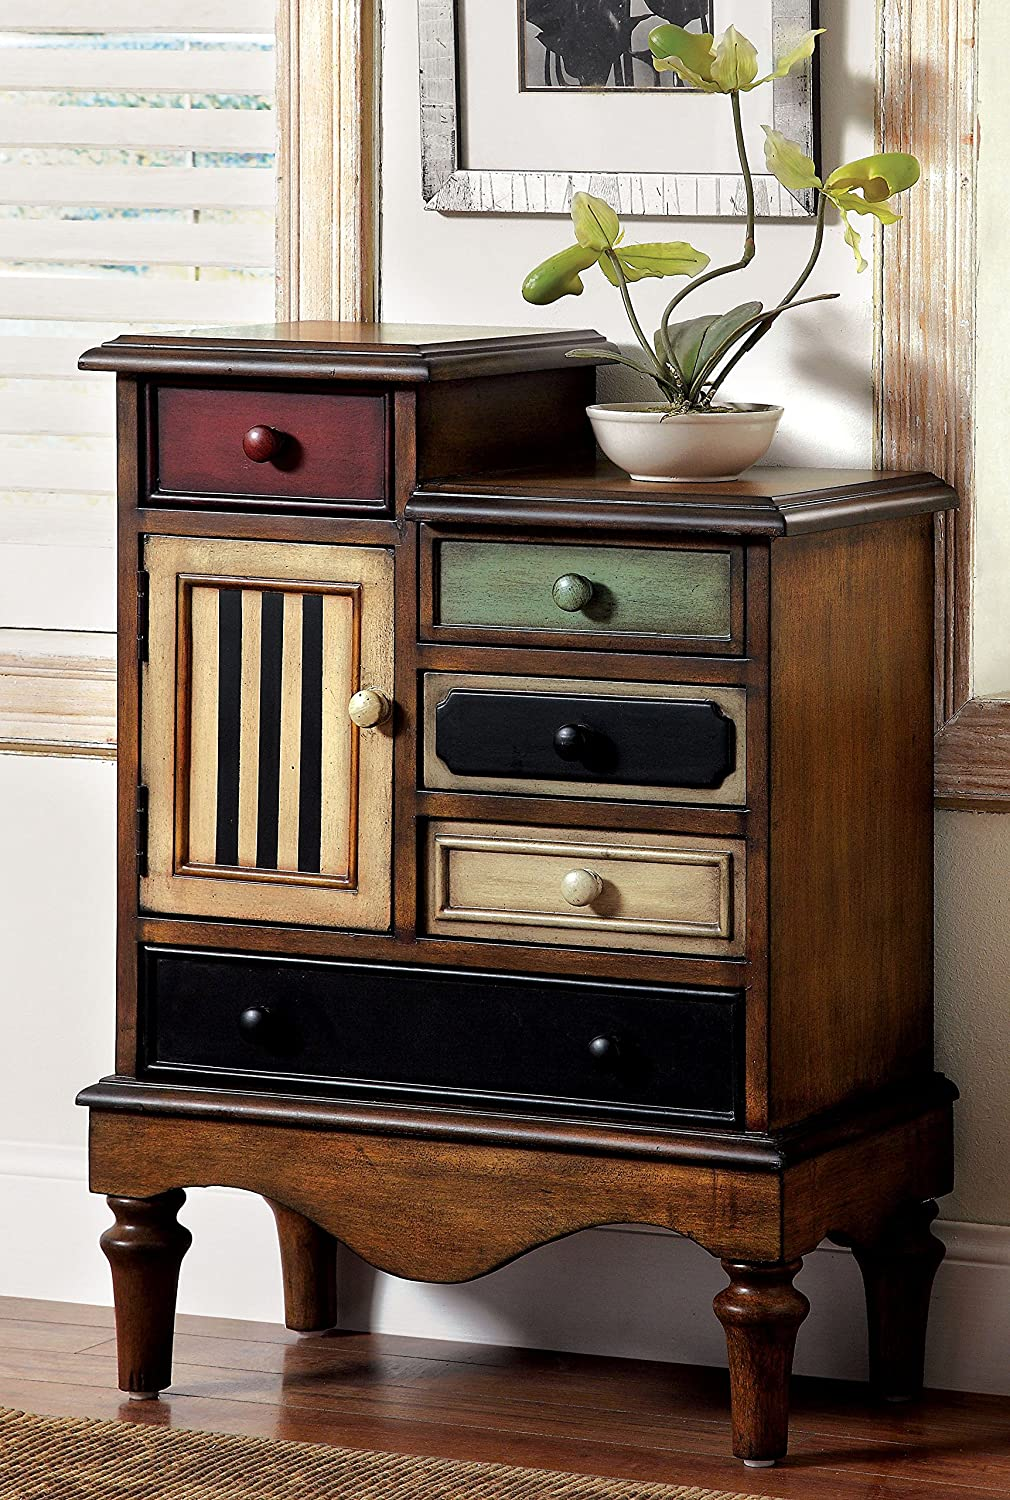 Amazon.com: Furniture Of America Circo Vintage Style Storage Chest, Antique  Walnut: Kitchen U0026 Dining